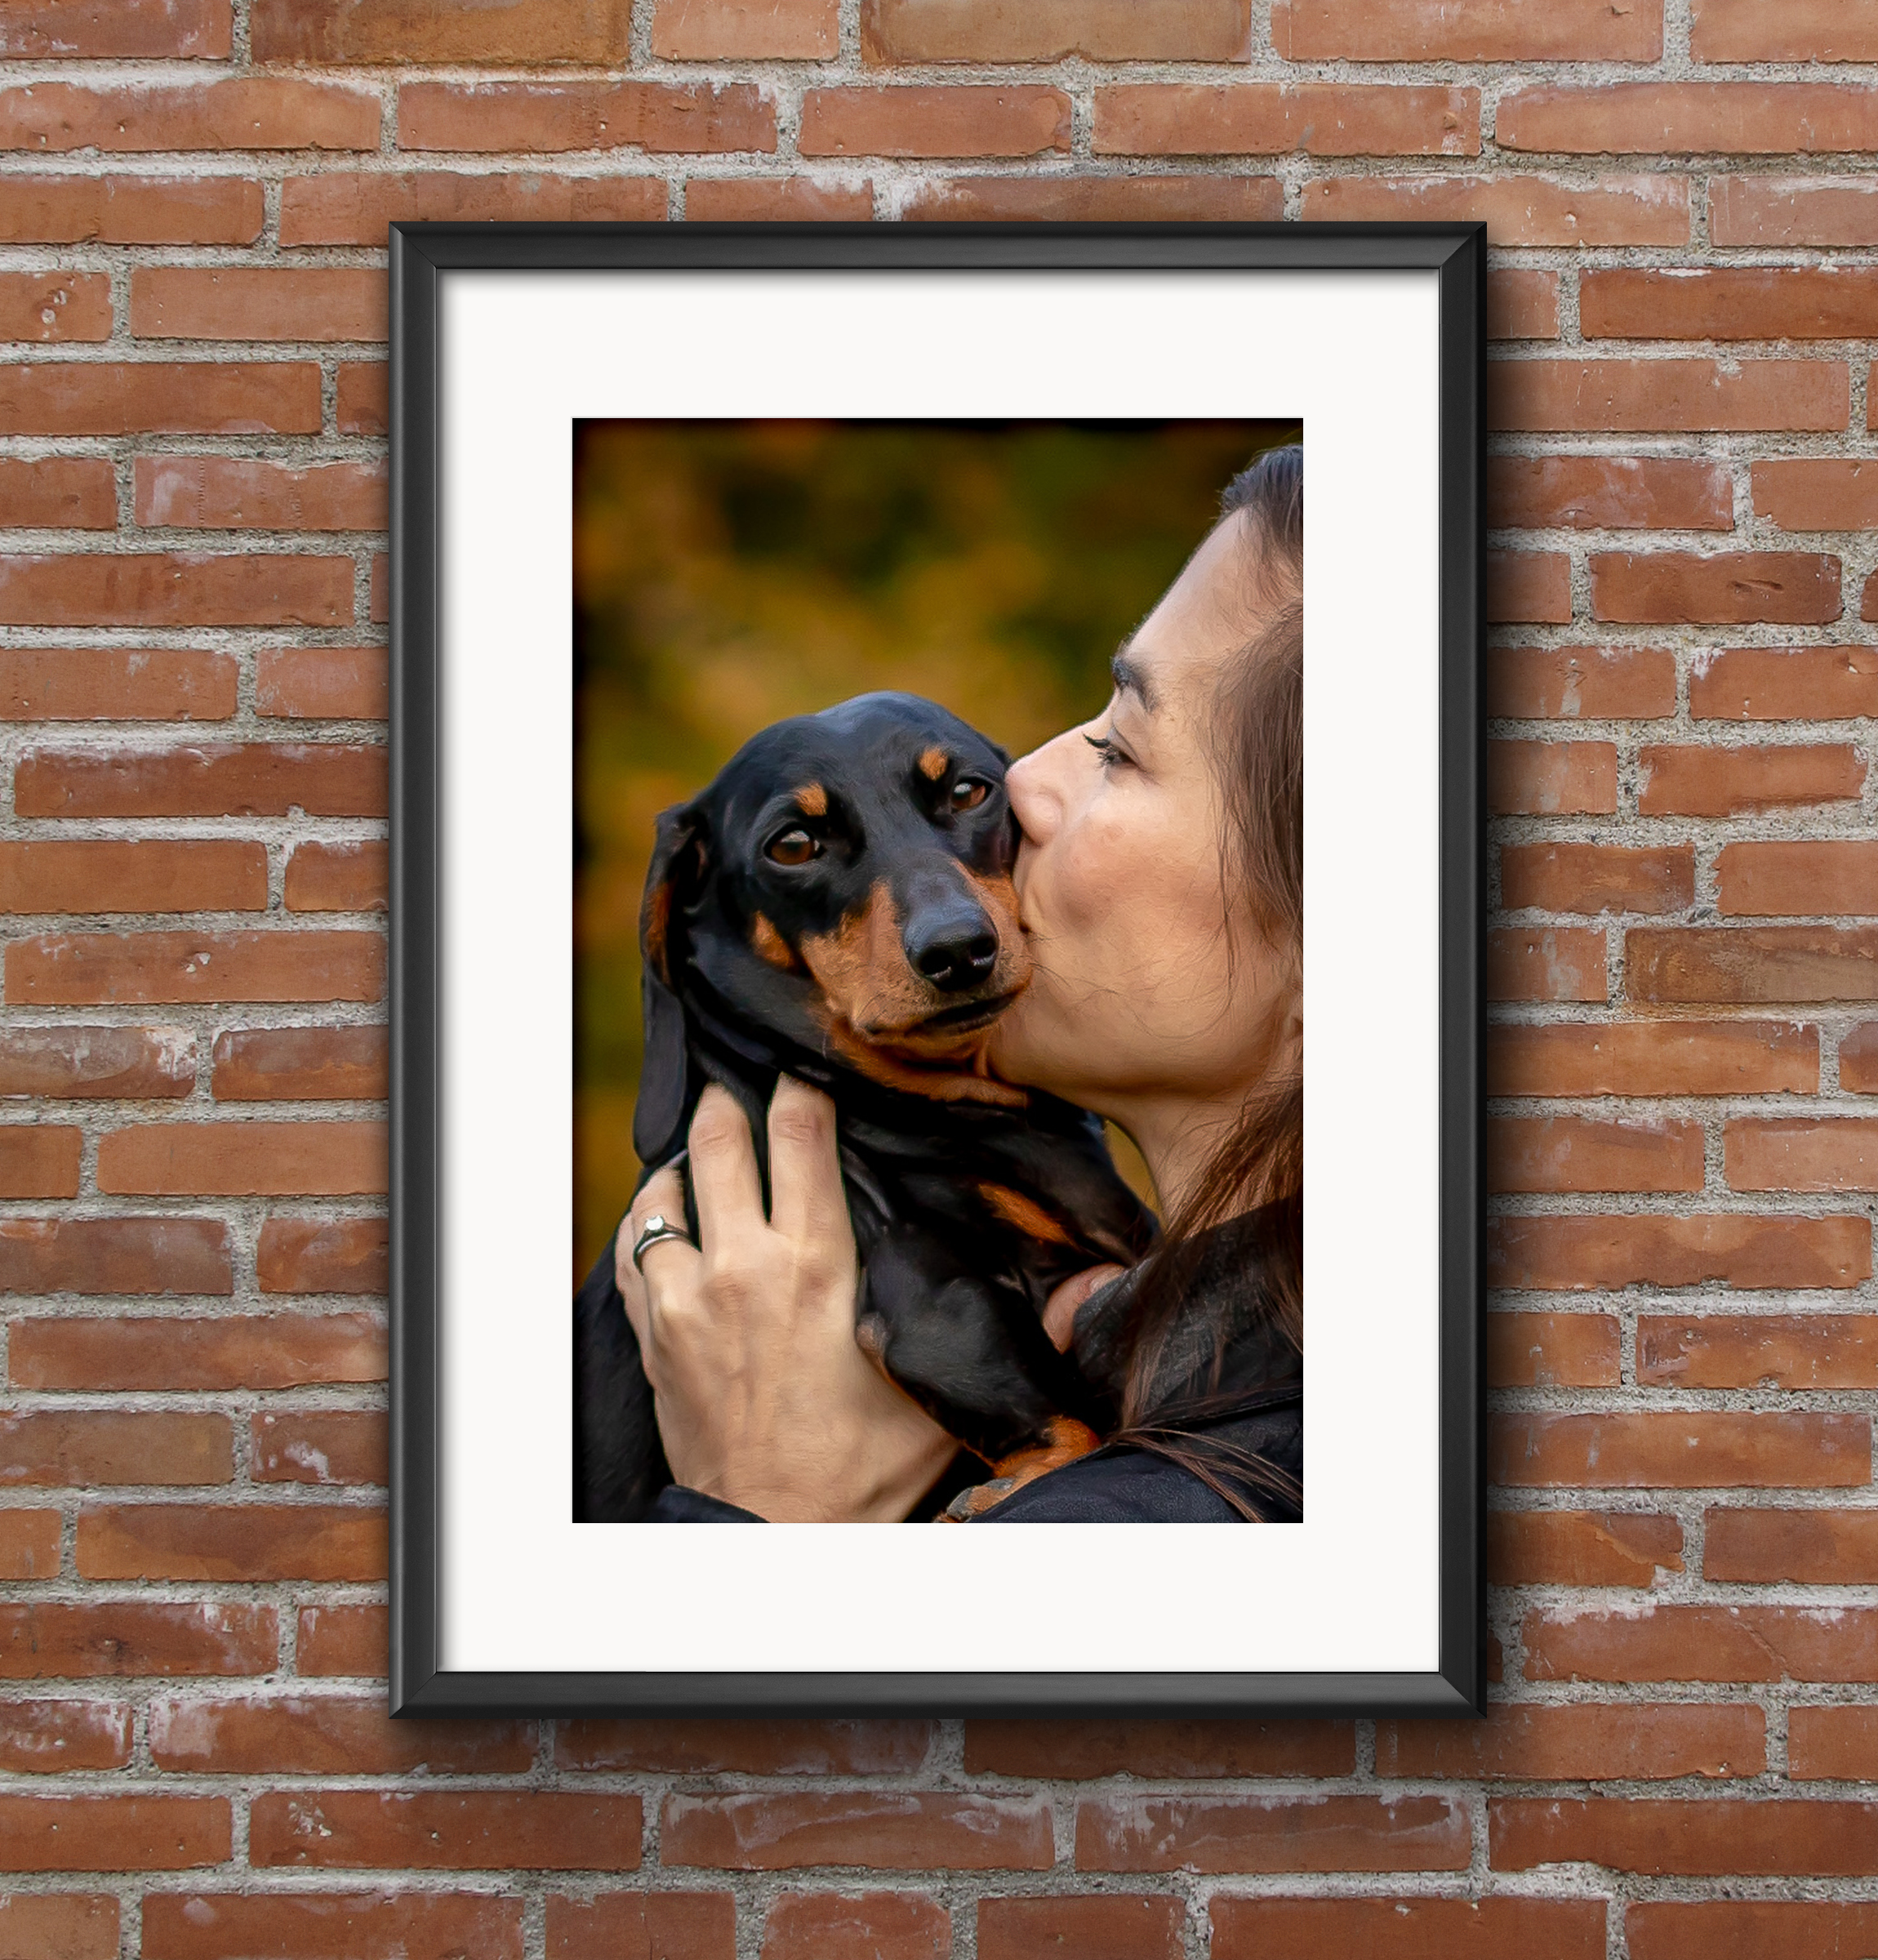 The Gold Package includes a spectacular A3-sized wall print, mounted in a beautiful wooden A2-sized frame.